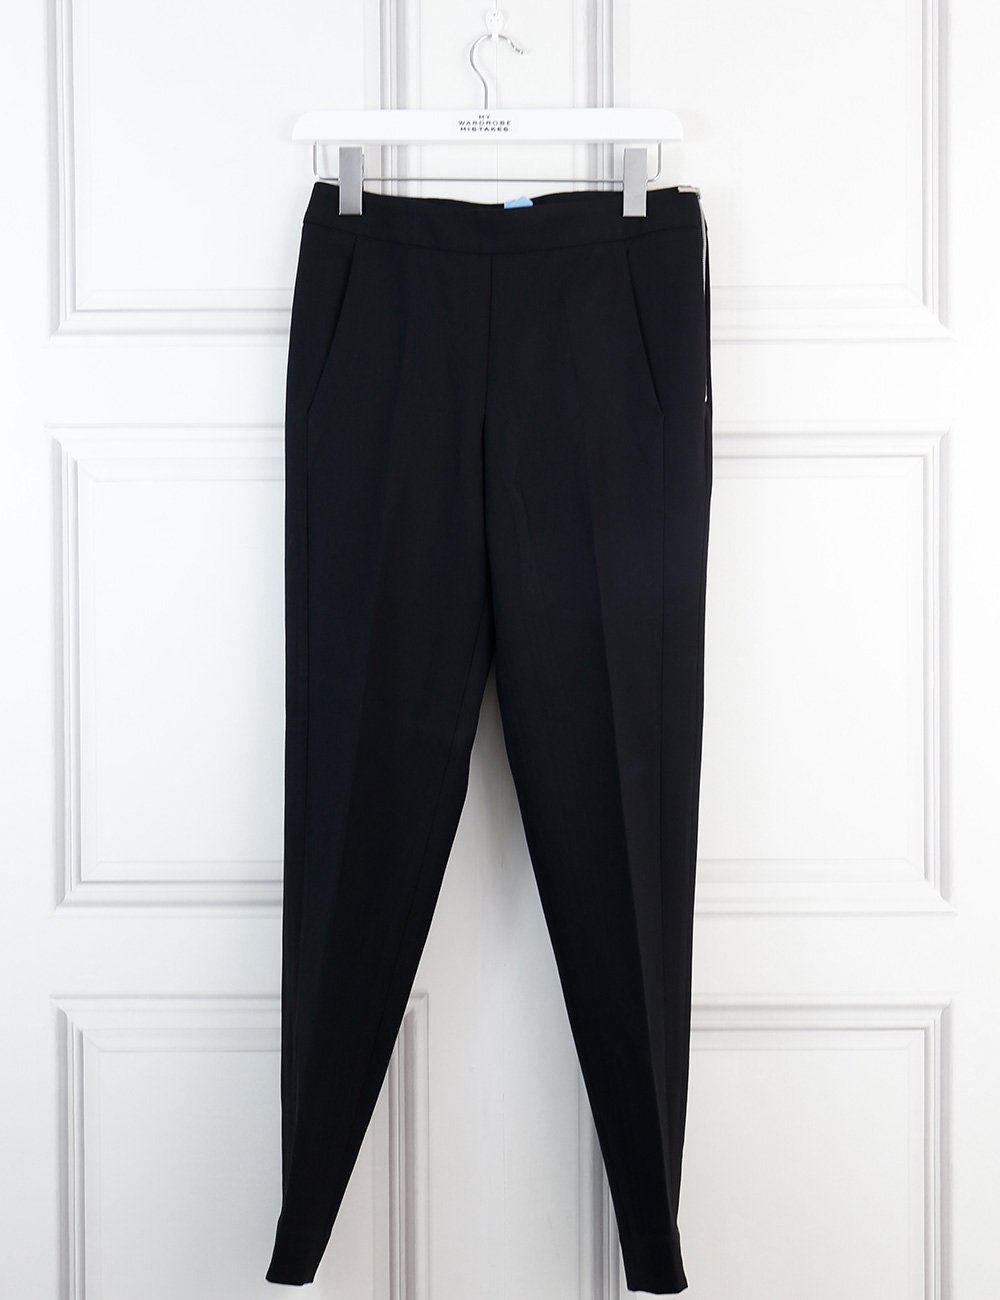 Amanda Wakeley black peg pants 8Uk